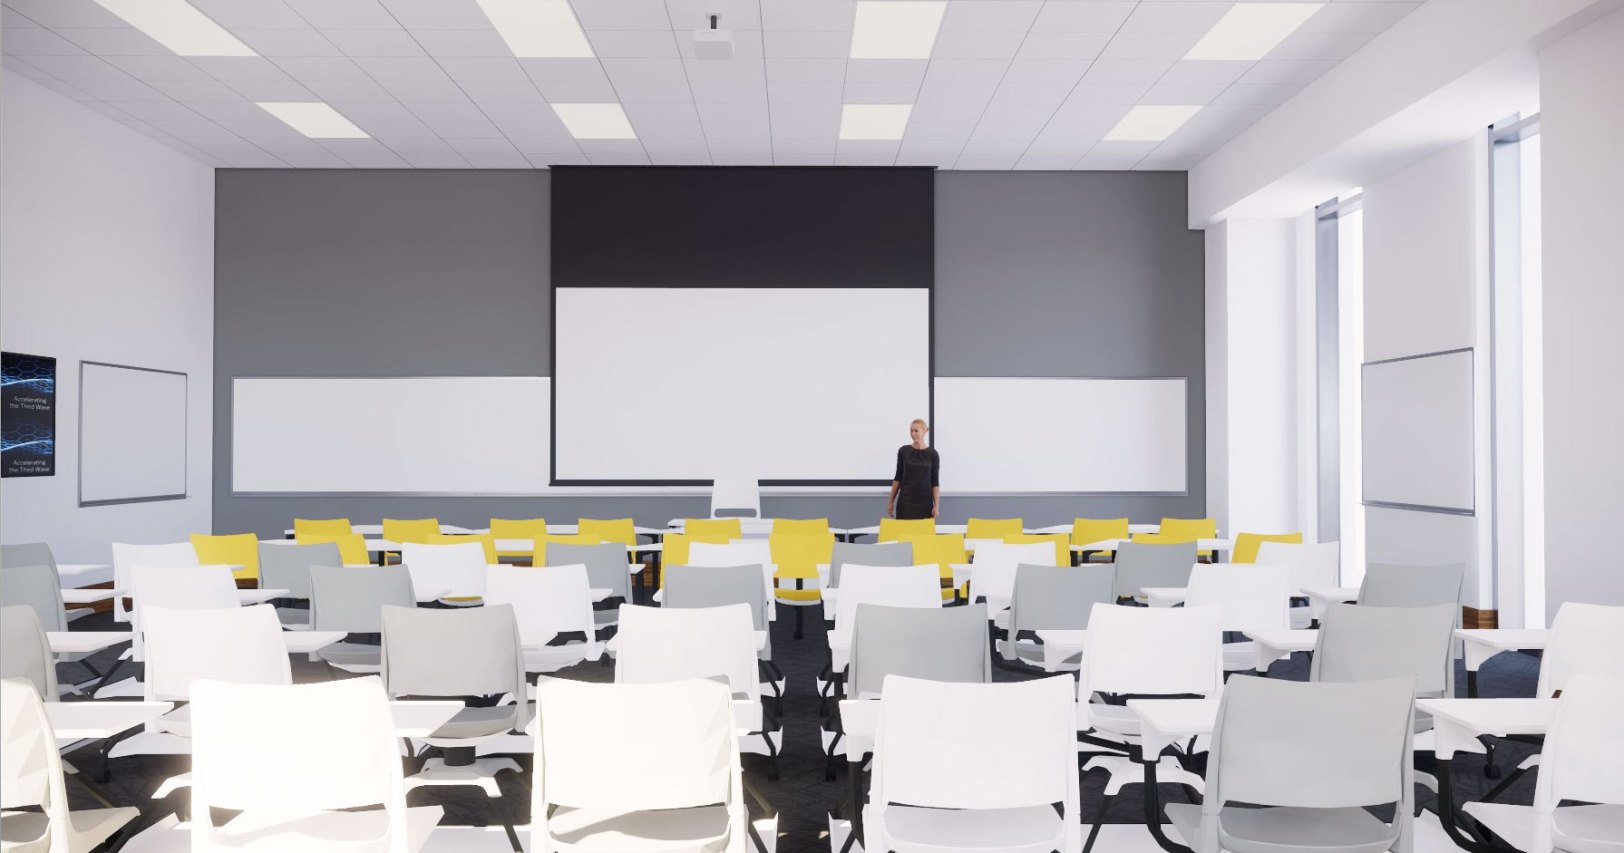 All rooms are designed the same way so that everyone has a consistent experience across the entire campus.